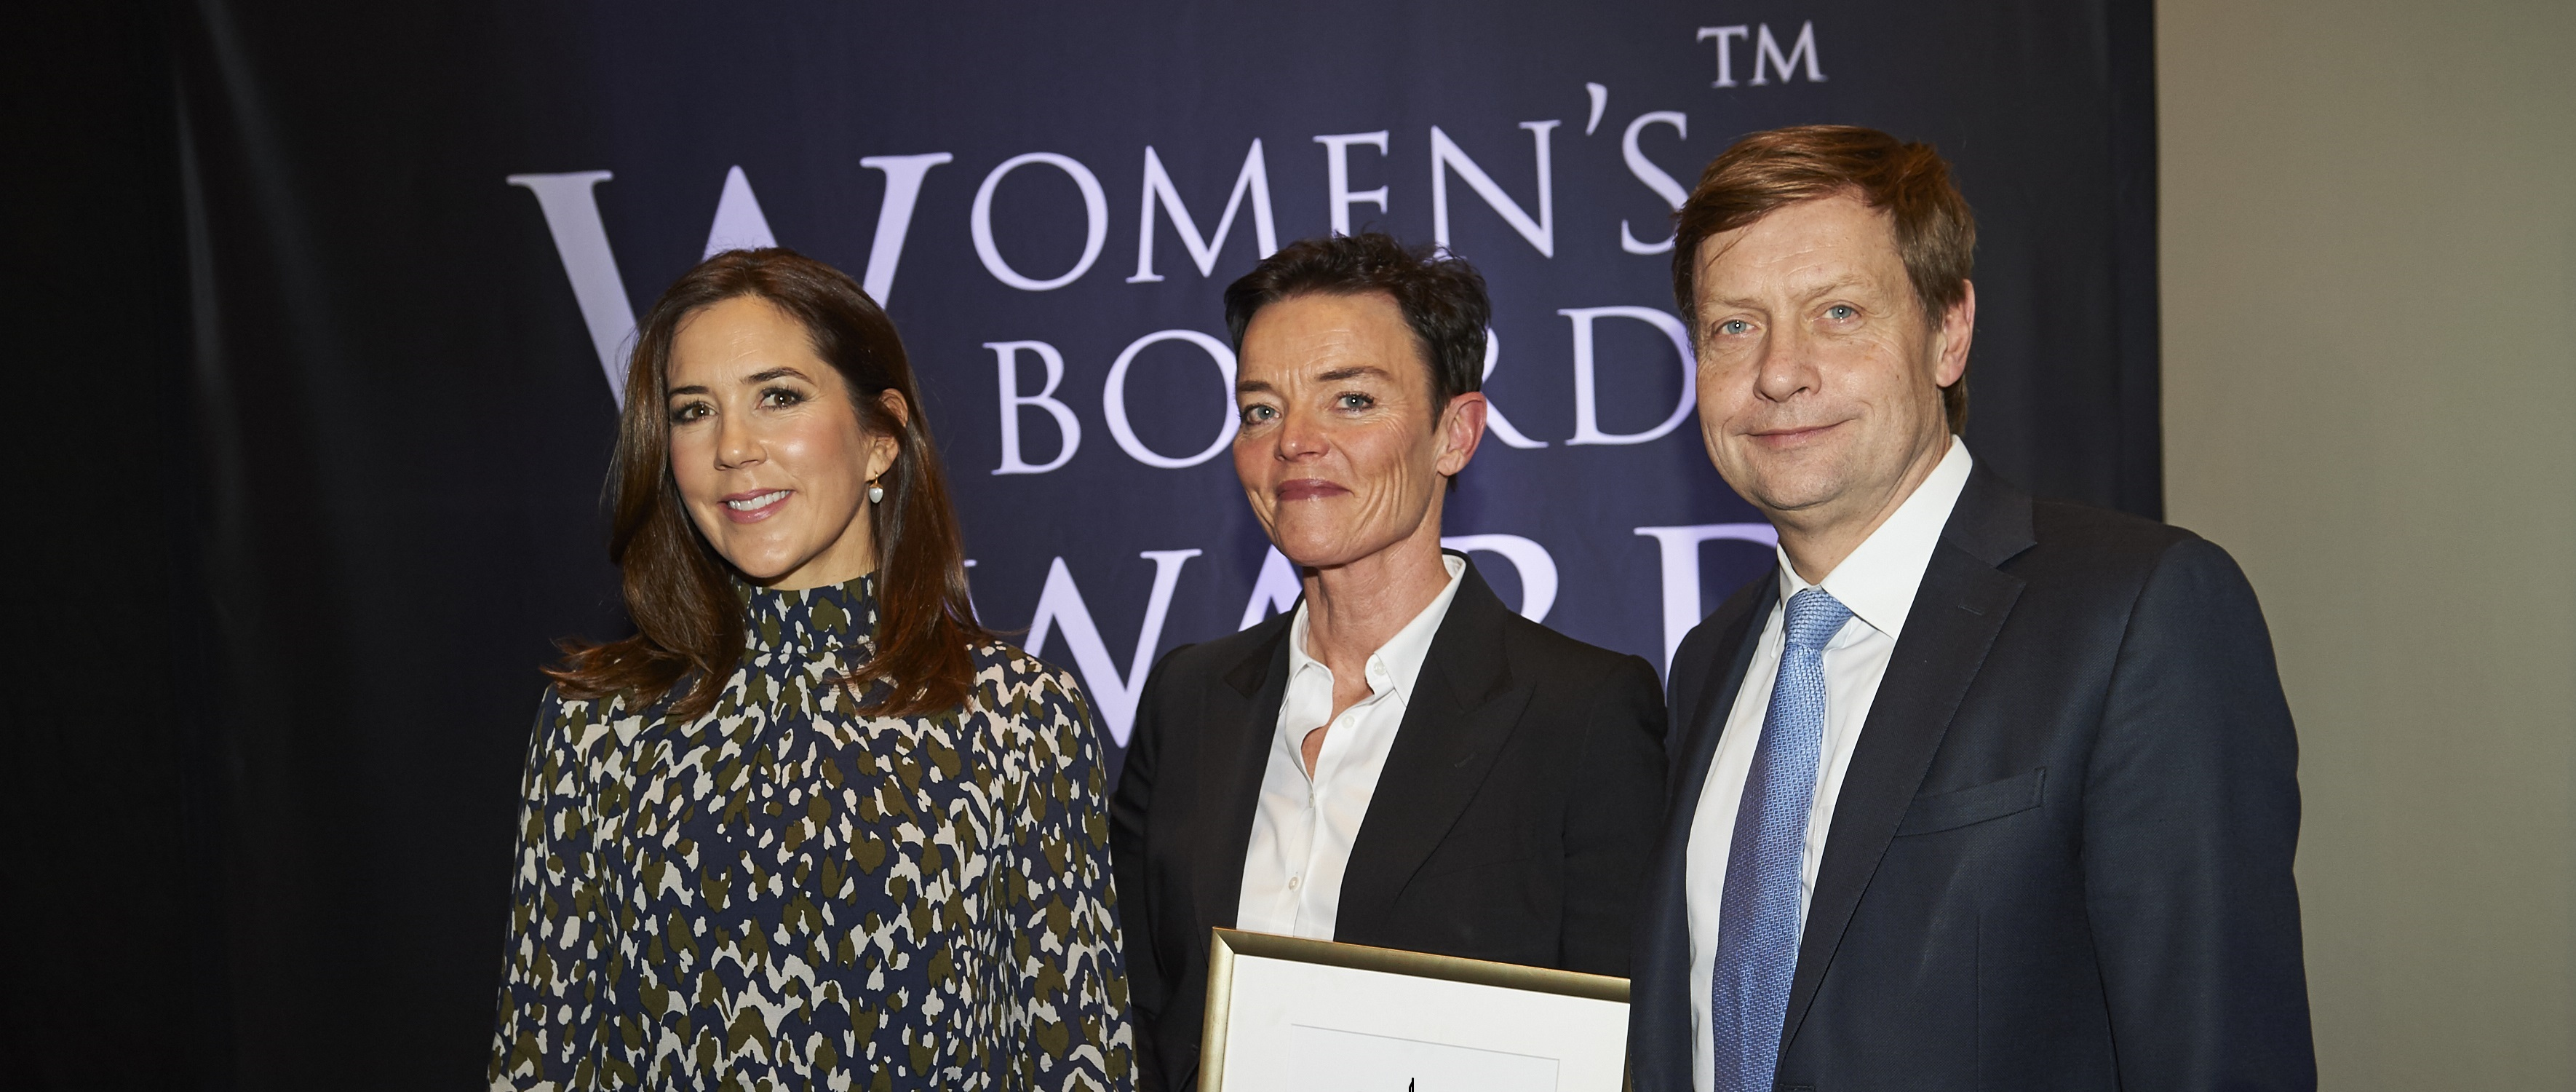 Womans board award 2018 Vinder Marianne Kierkegaard Hkh Mary holdte tale og overrakte prisen Opgave for Womans board award